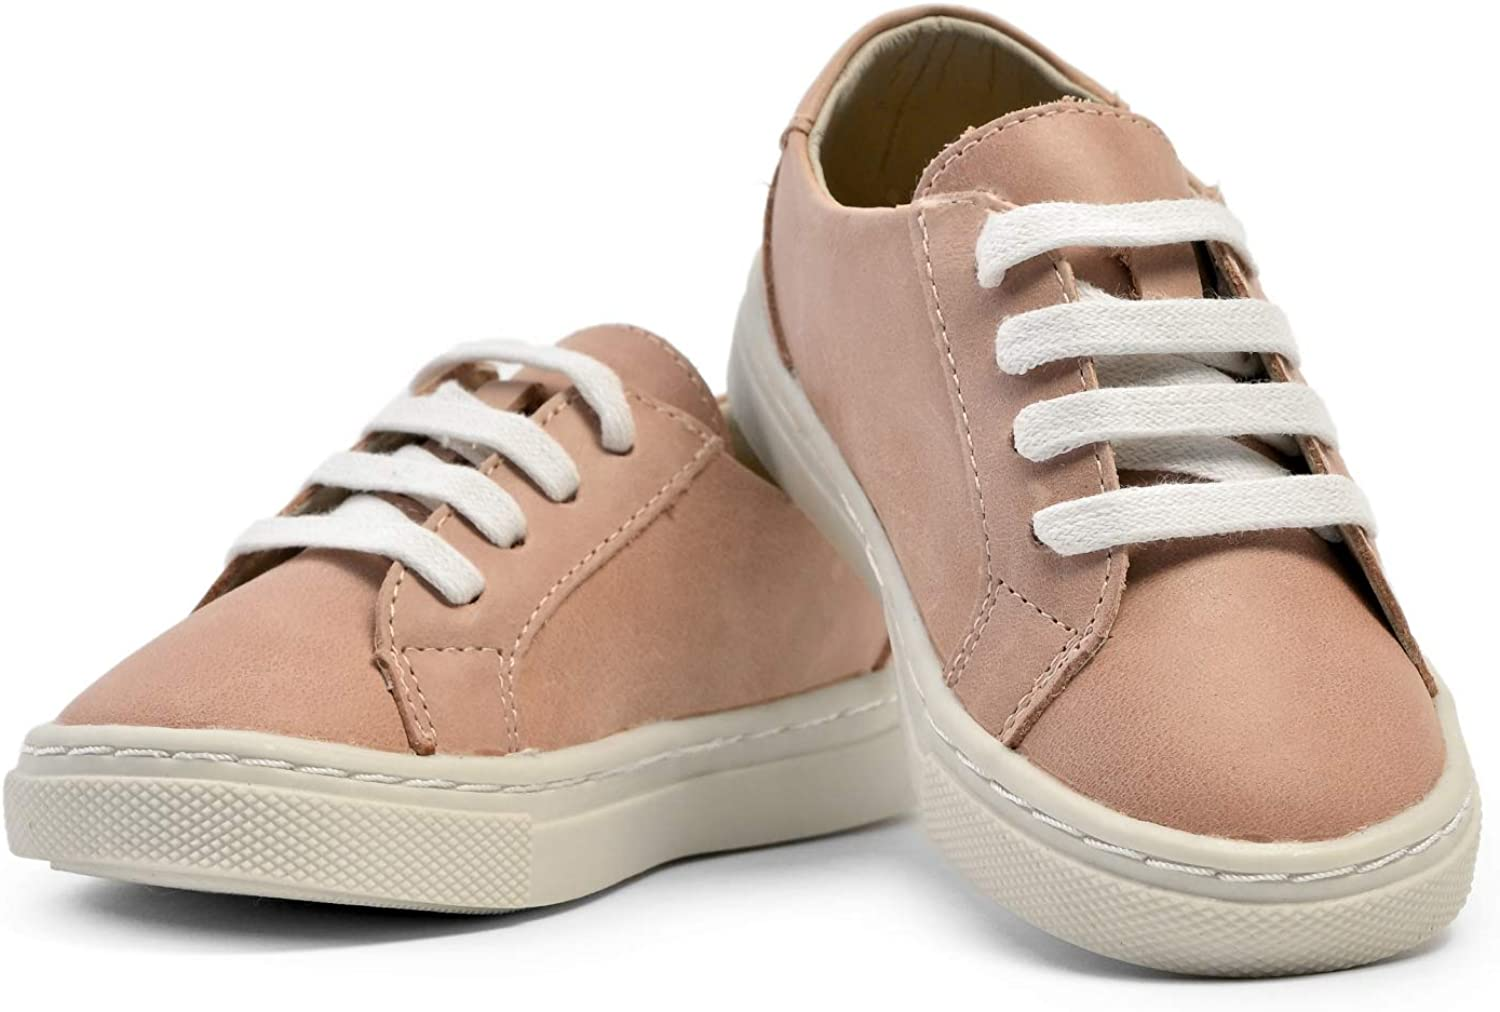 Piper Finn Award-winning store Top Grain Leather Low Sneakers Nonskid Rubber Large special price Sol